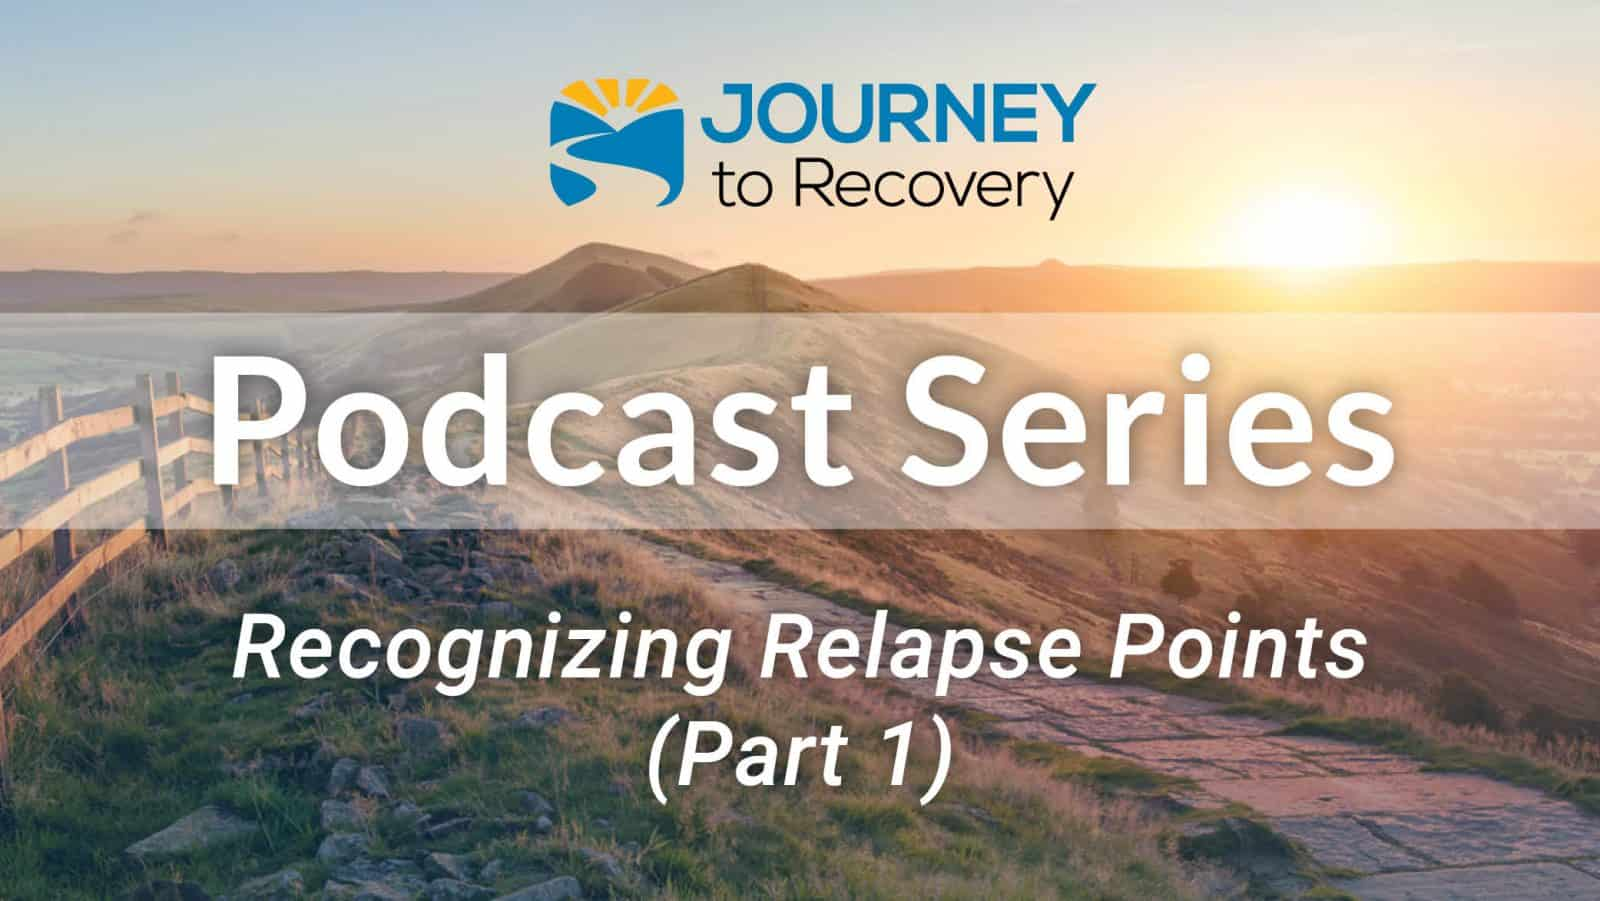 Recognizing Relapse Points (Part 1)